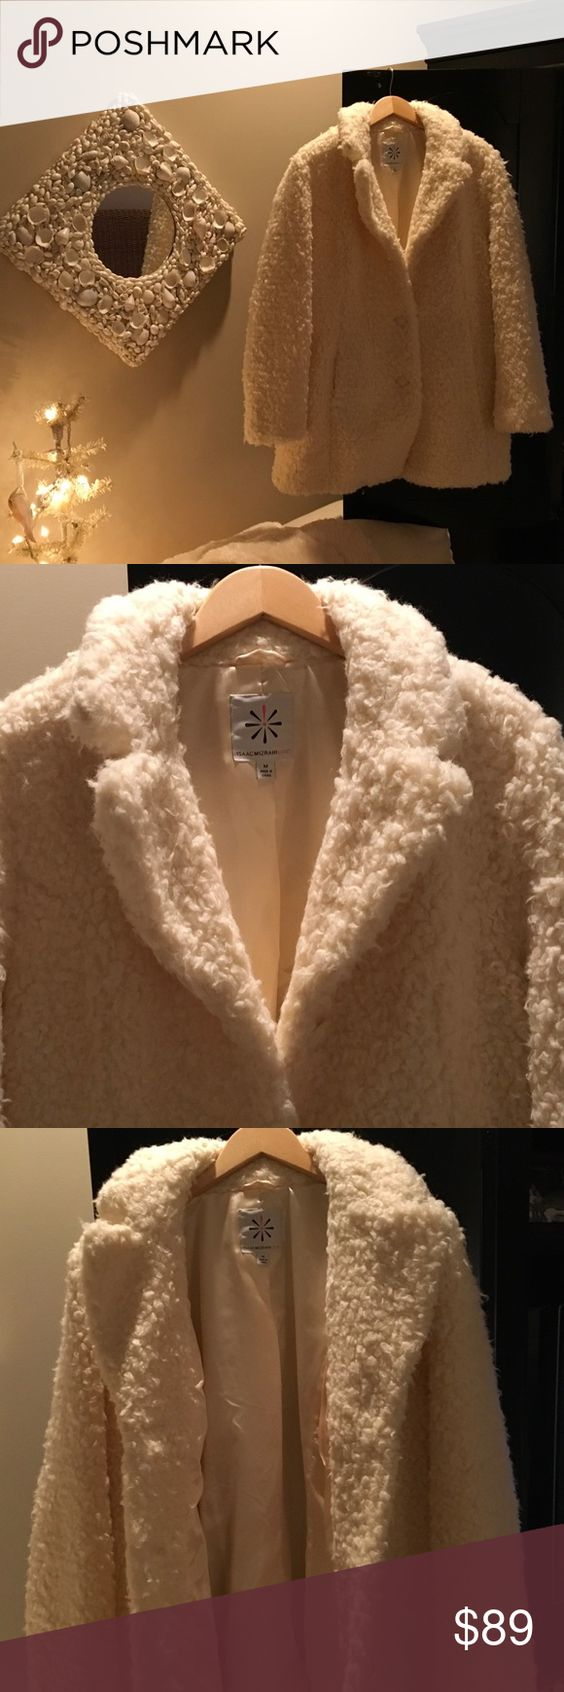 "Isaac Mizrahi Faux Fur Coat Brand new ( came in bag -no tag) Winter Wonderland. 34"" long ,fully lined ,collared, 3 button, side pocket, machine wash, relaxed fit, generous cut.   Cozy and lovely for the season! Isaac Mizrahi Jackets & Coats"